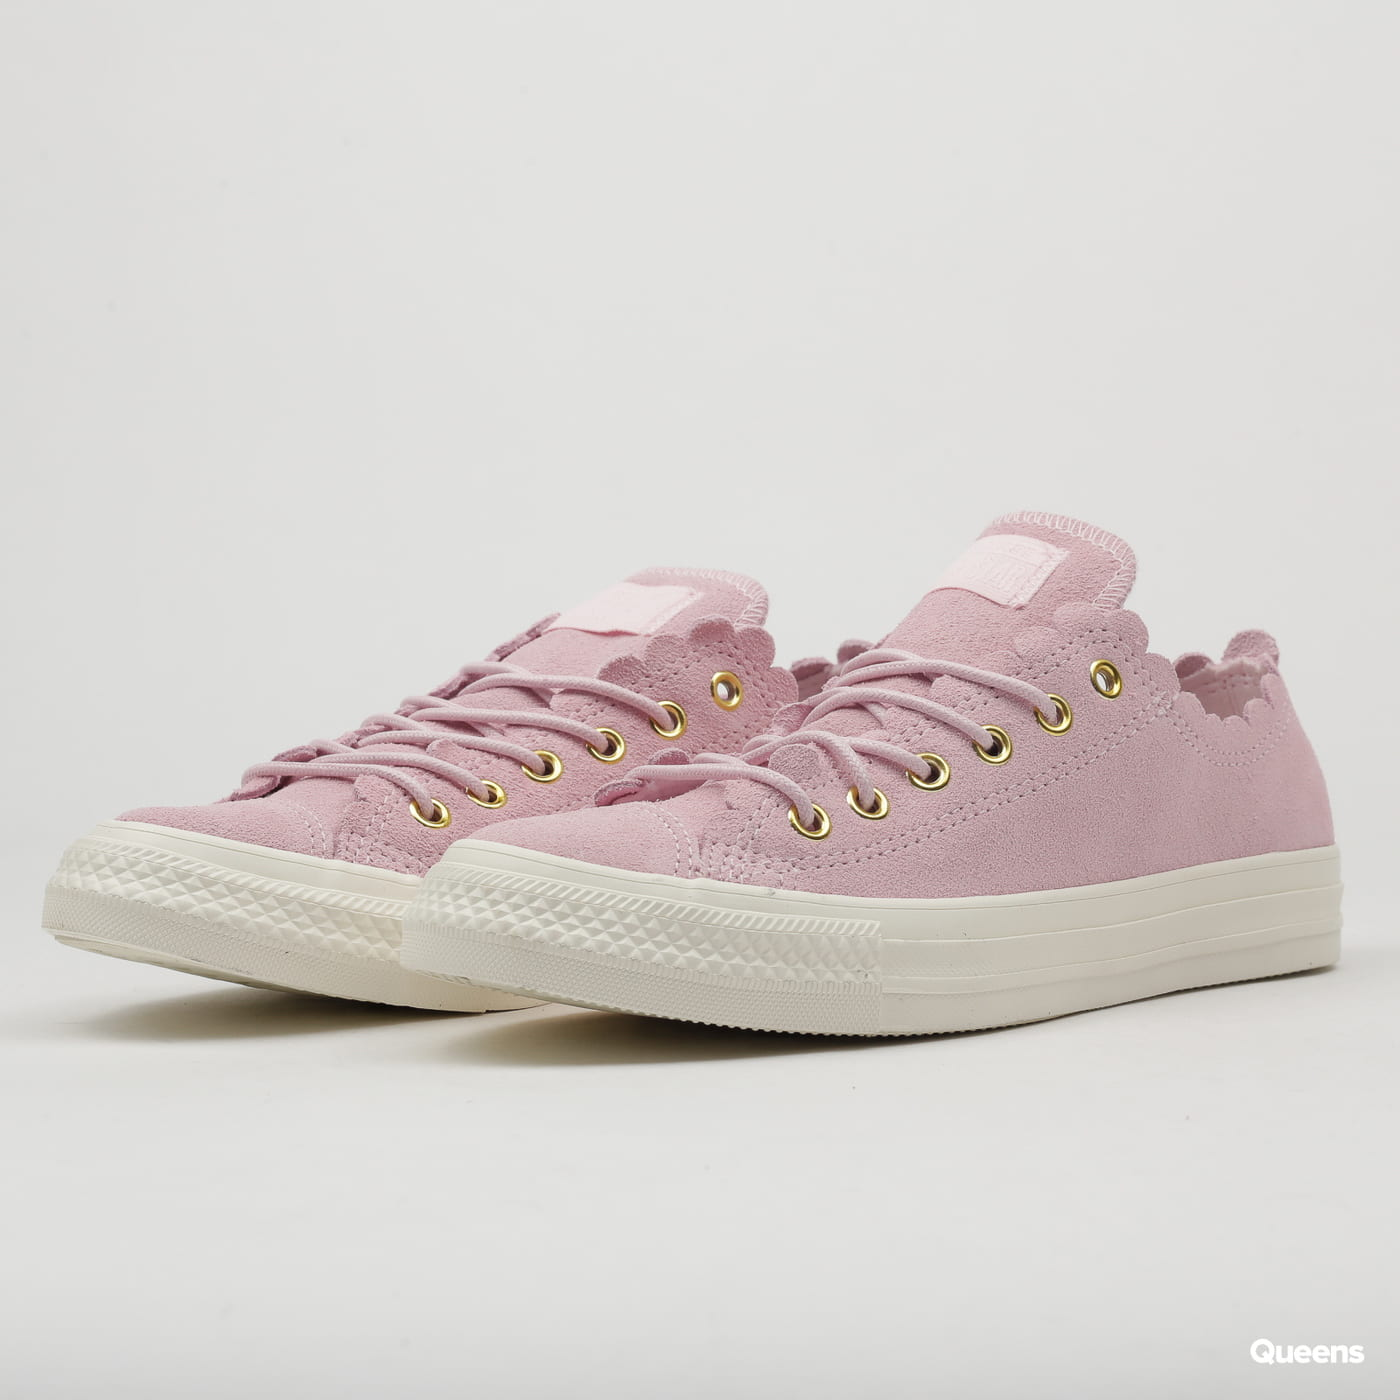 521cbbf7aaa Converse Chuck Taylor All Star OX pink foam / gold / egret (C563416) –  Queens 💚